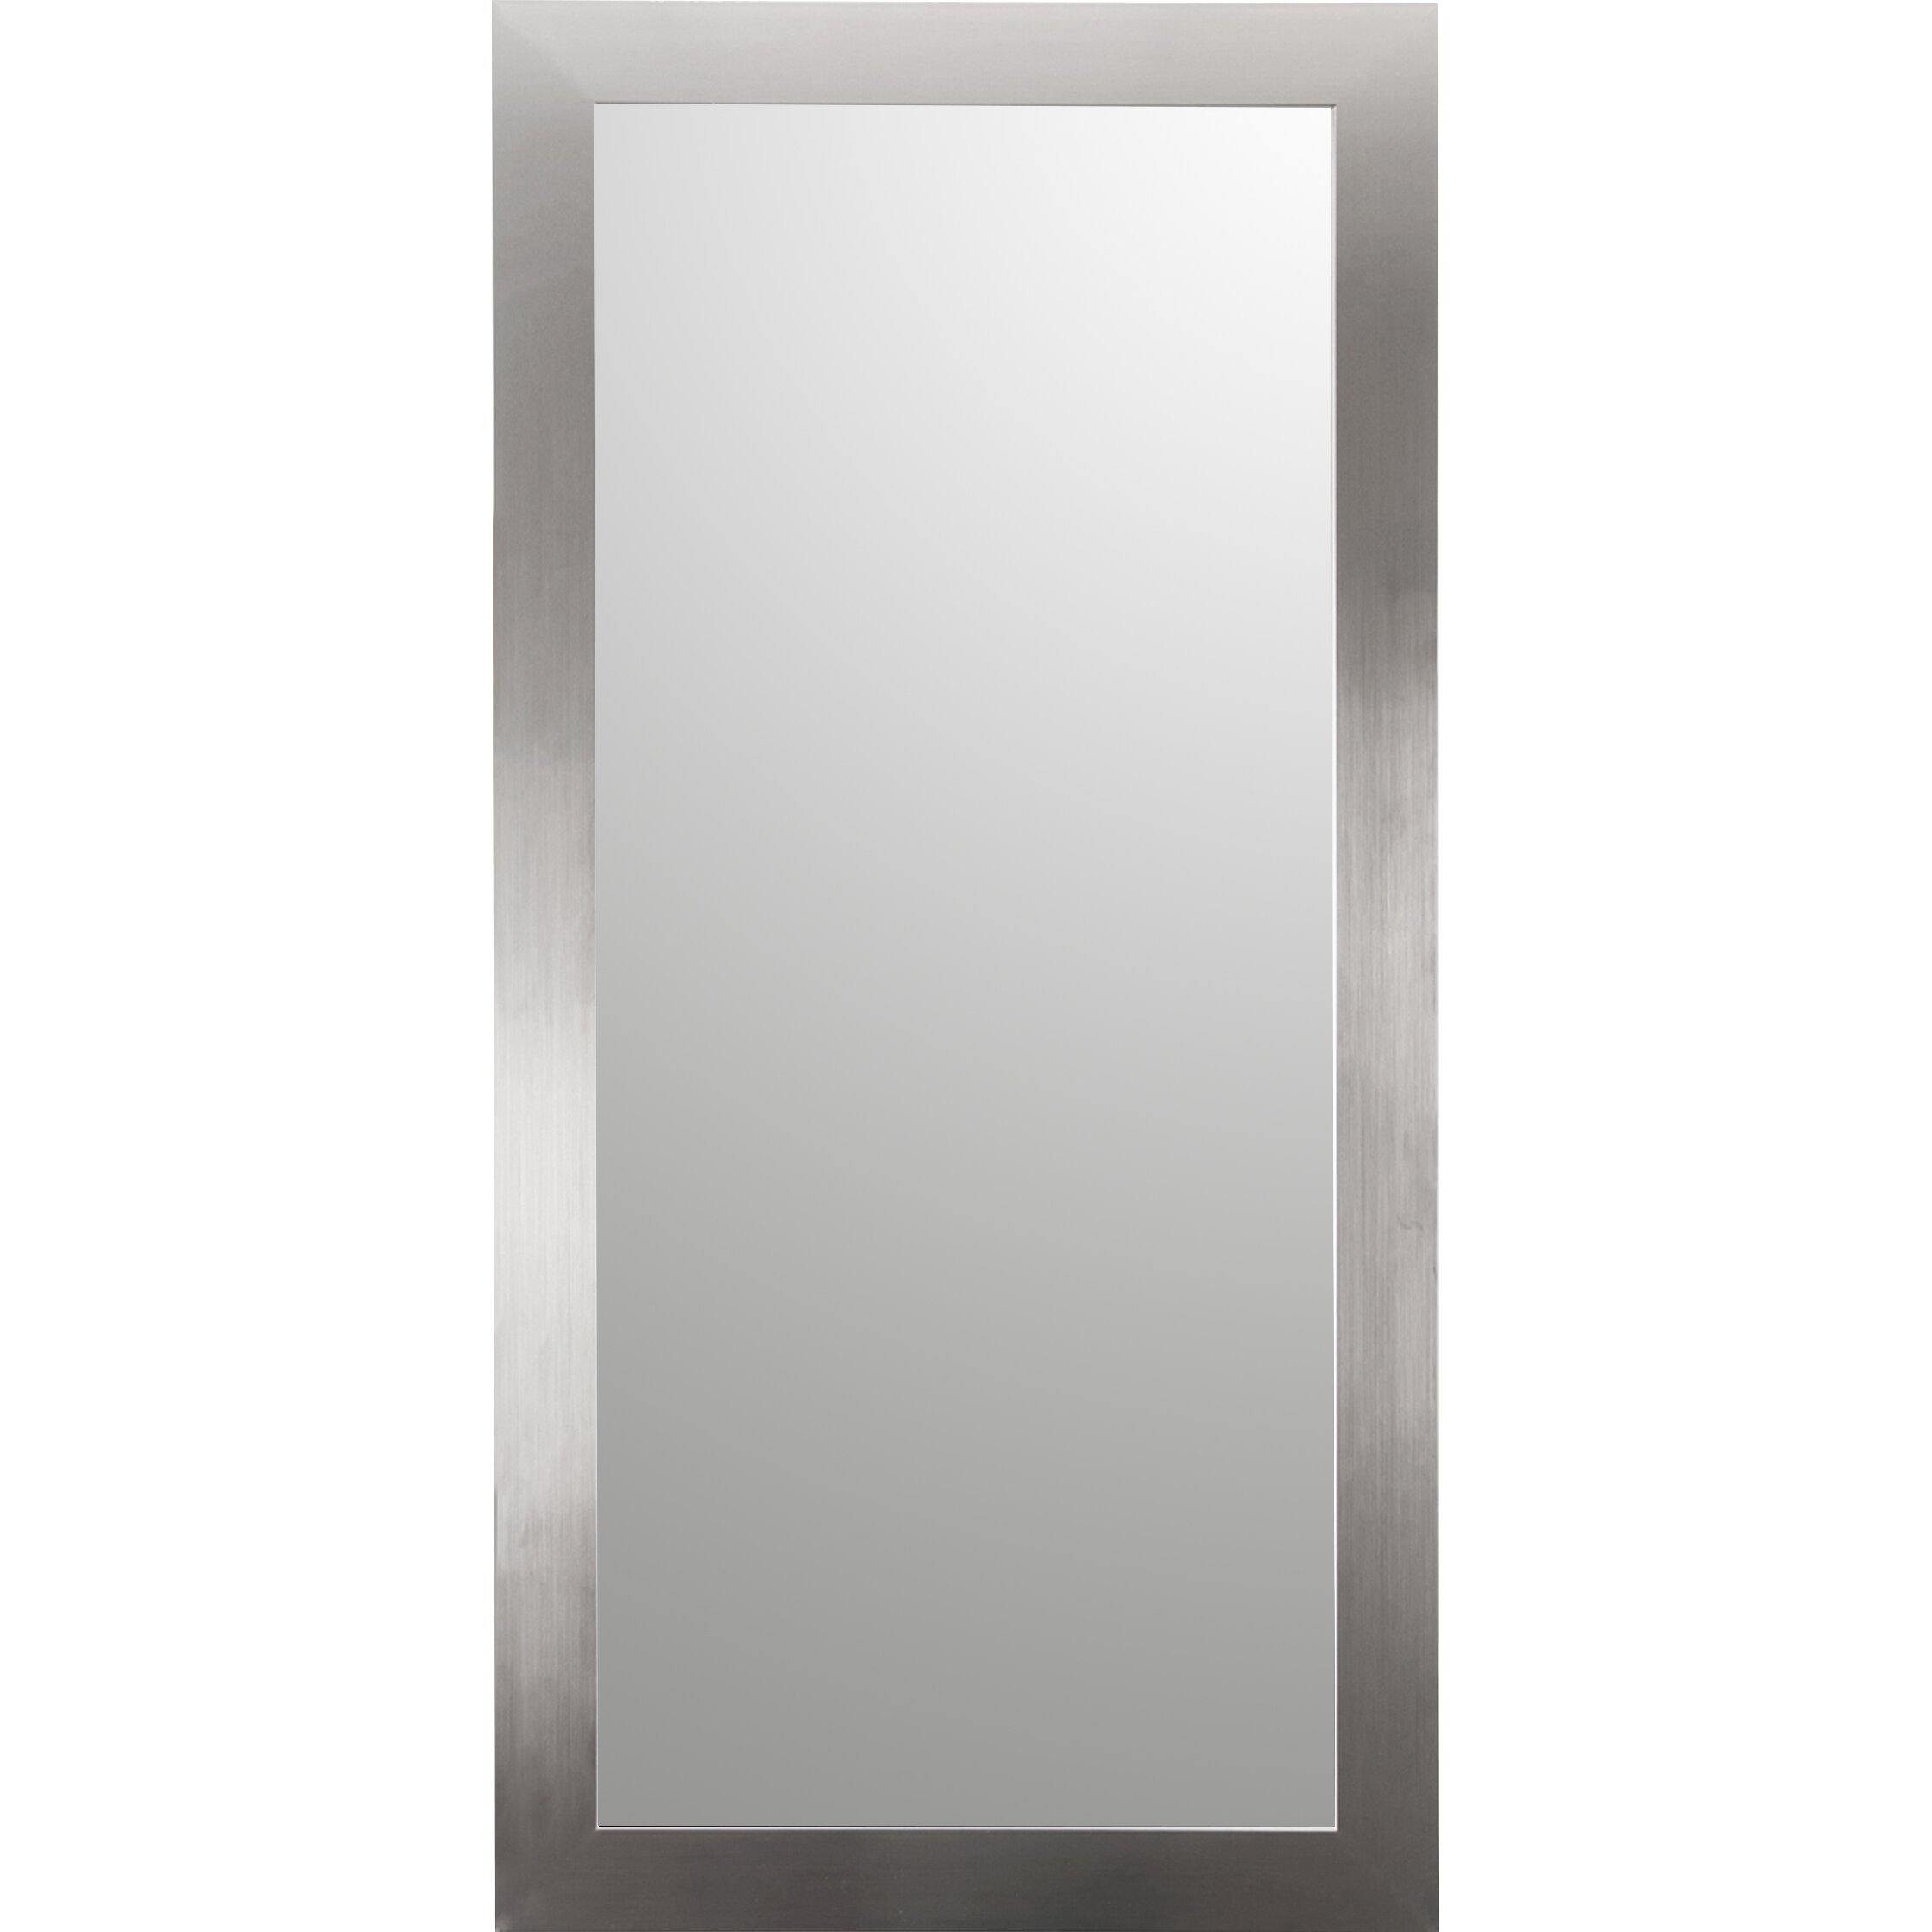 brandtworksllc full body floor mirror reviews wayfair. Black Bedroom Furniture Sets. Home Design Ideas